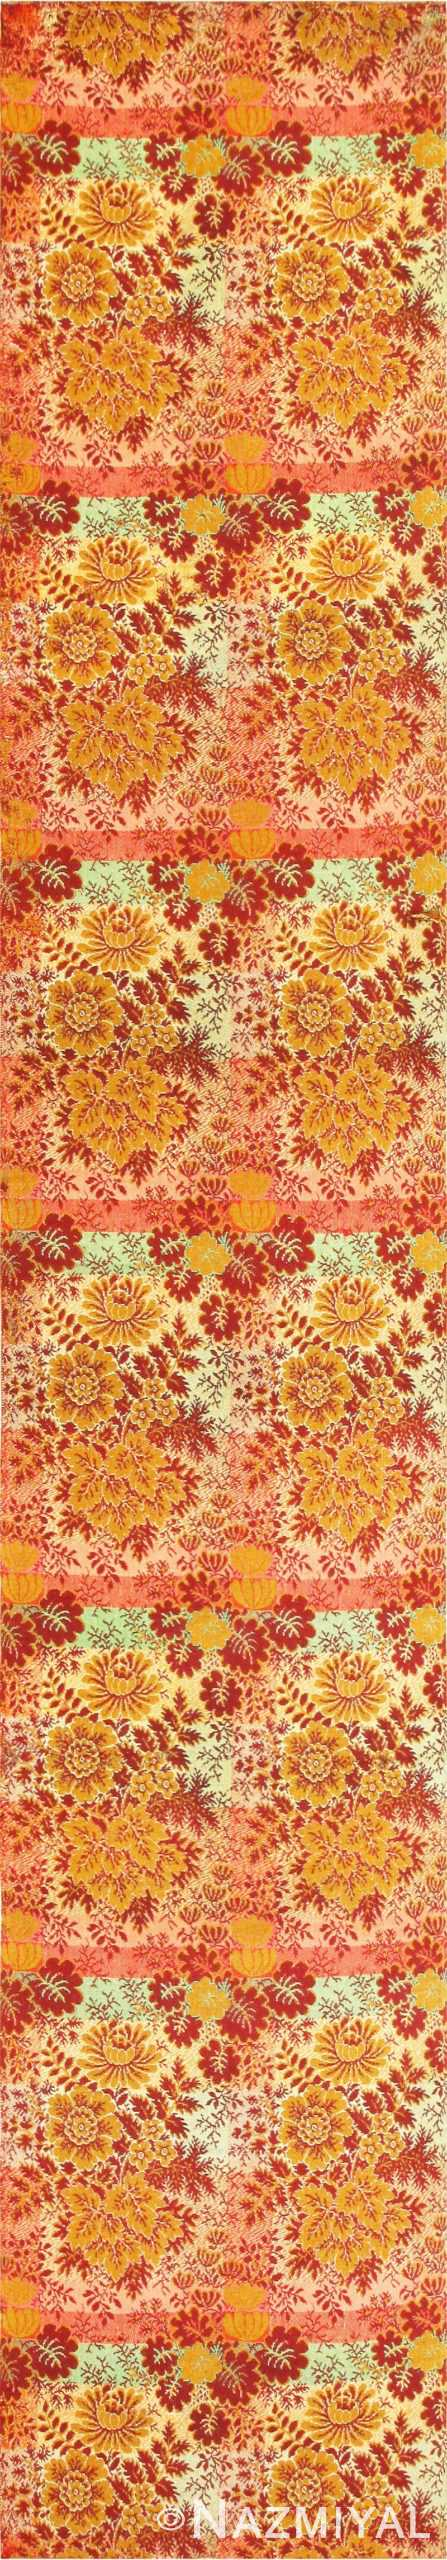 Floral Antique American Ingrain Runner Rug 50553 Nazmiyal